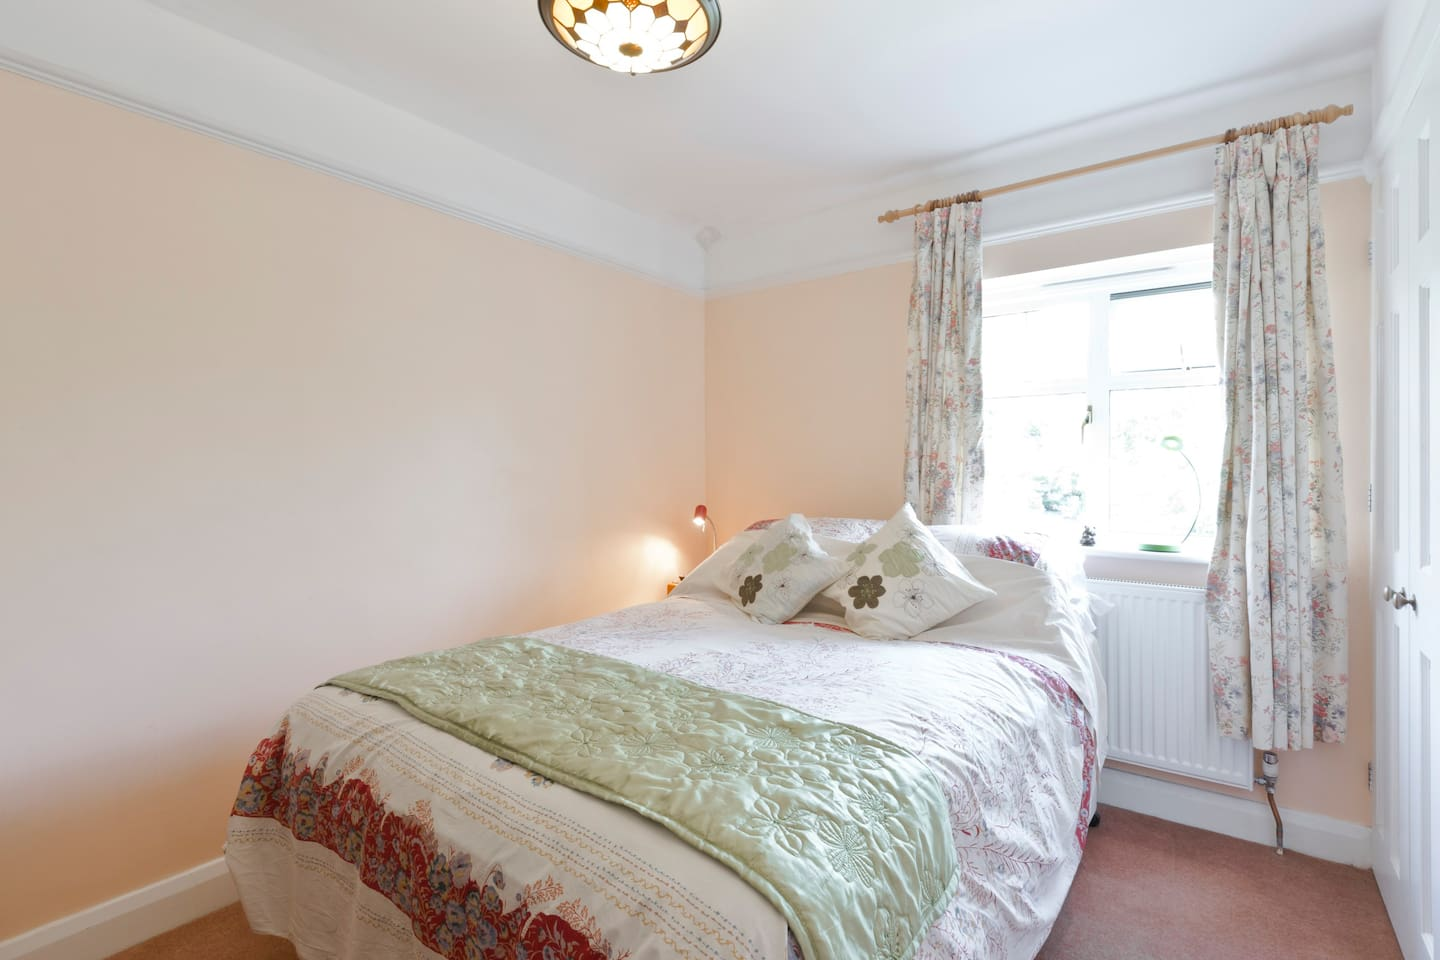 The bedroom, with comfortable mattress, fresh cotton sheets, comfy pillows and soft, lightweight quilt.